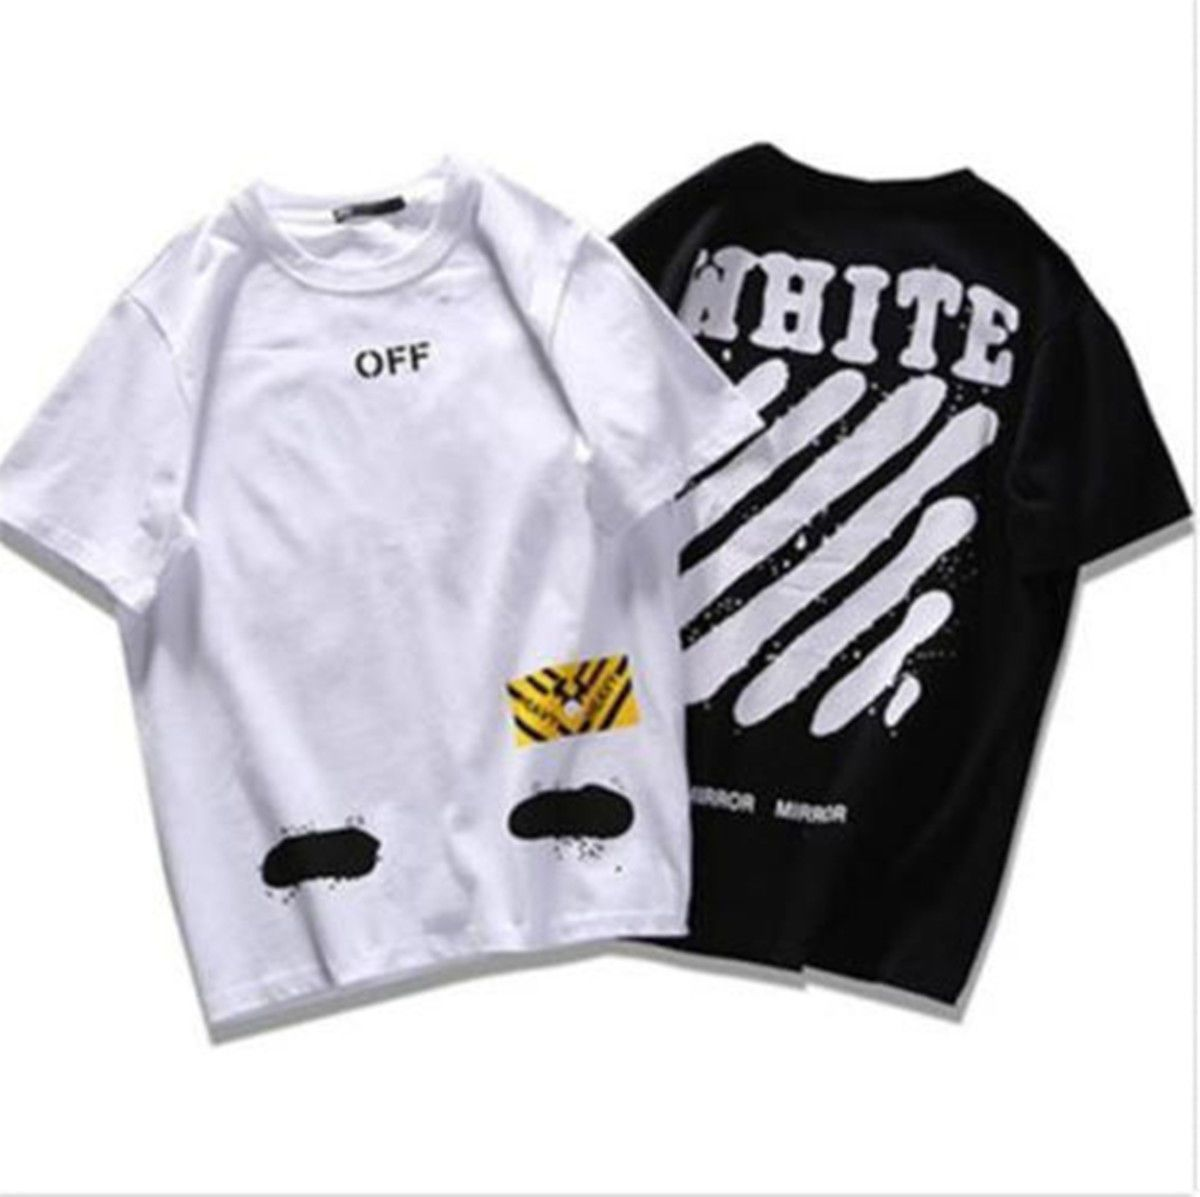 27f169e31c4c Kpop Off White Tshirt C O Virgil Abloh Pyrex Vision Summer Splash-Ink Shirt